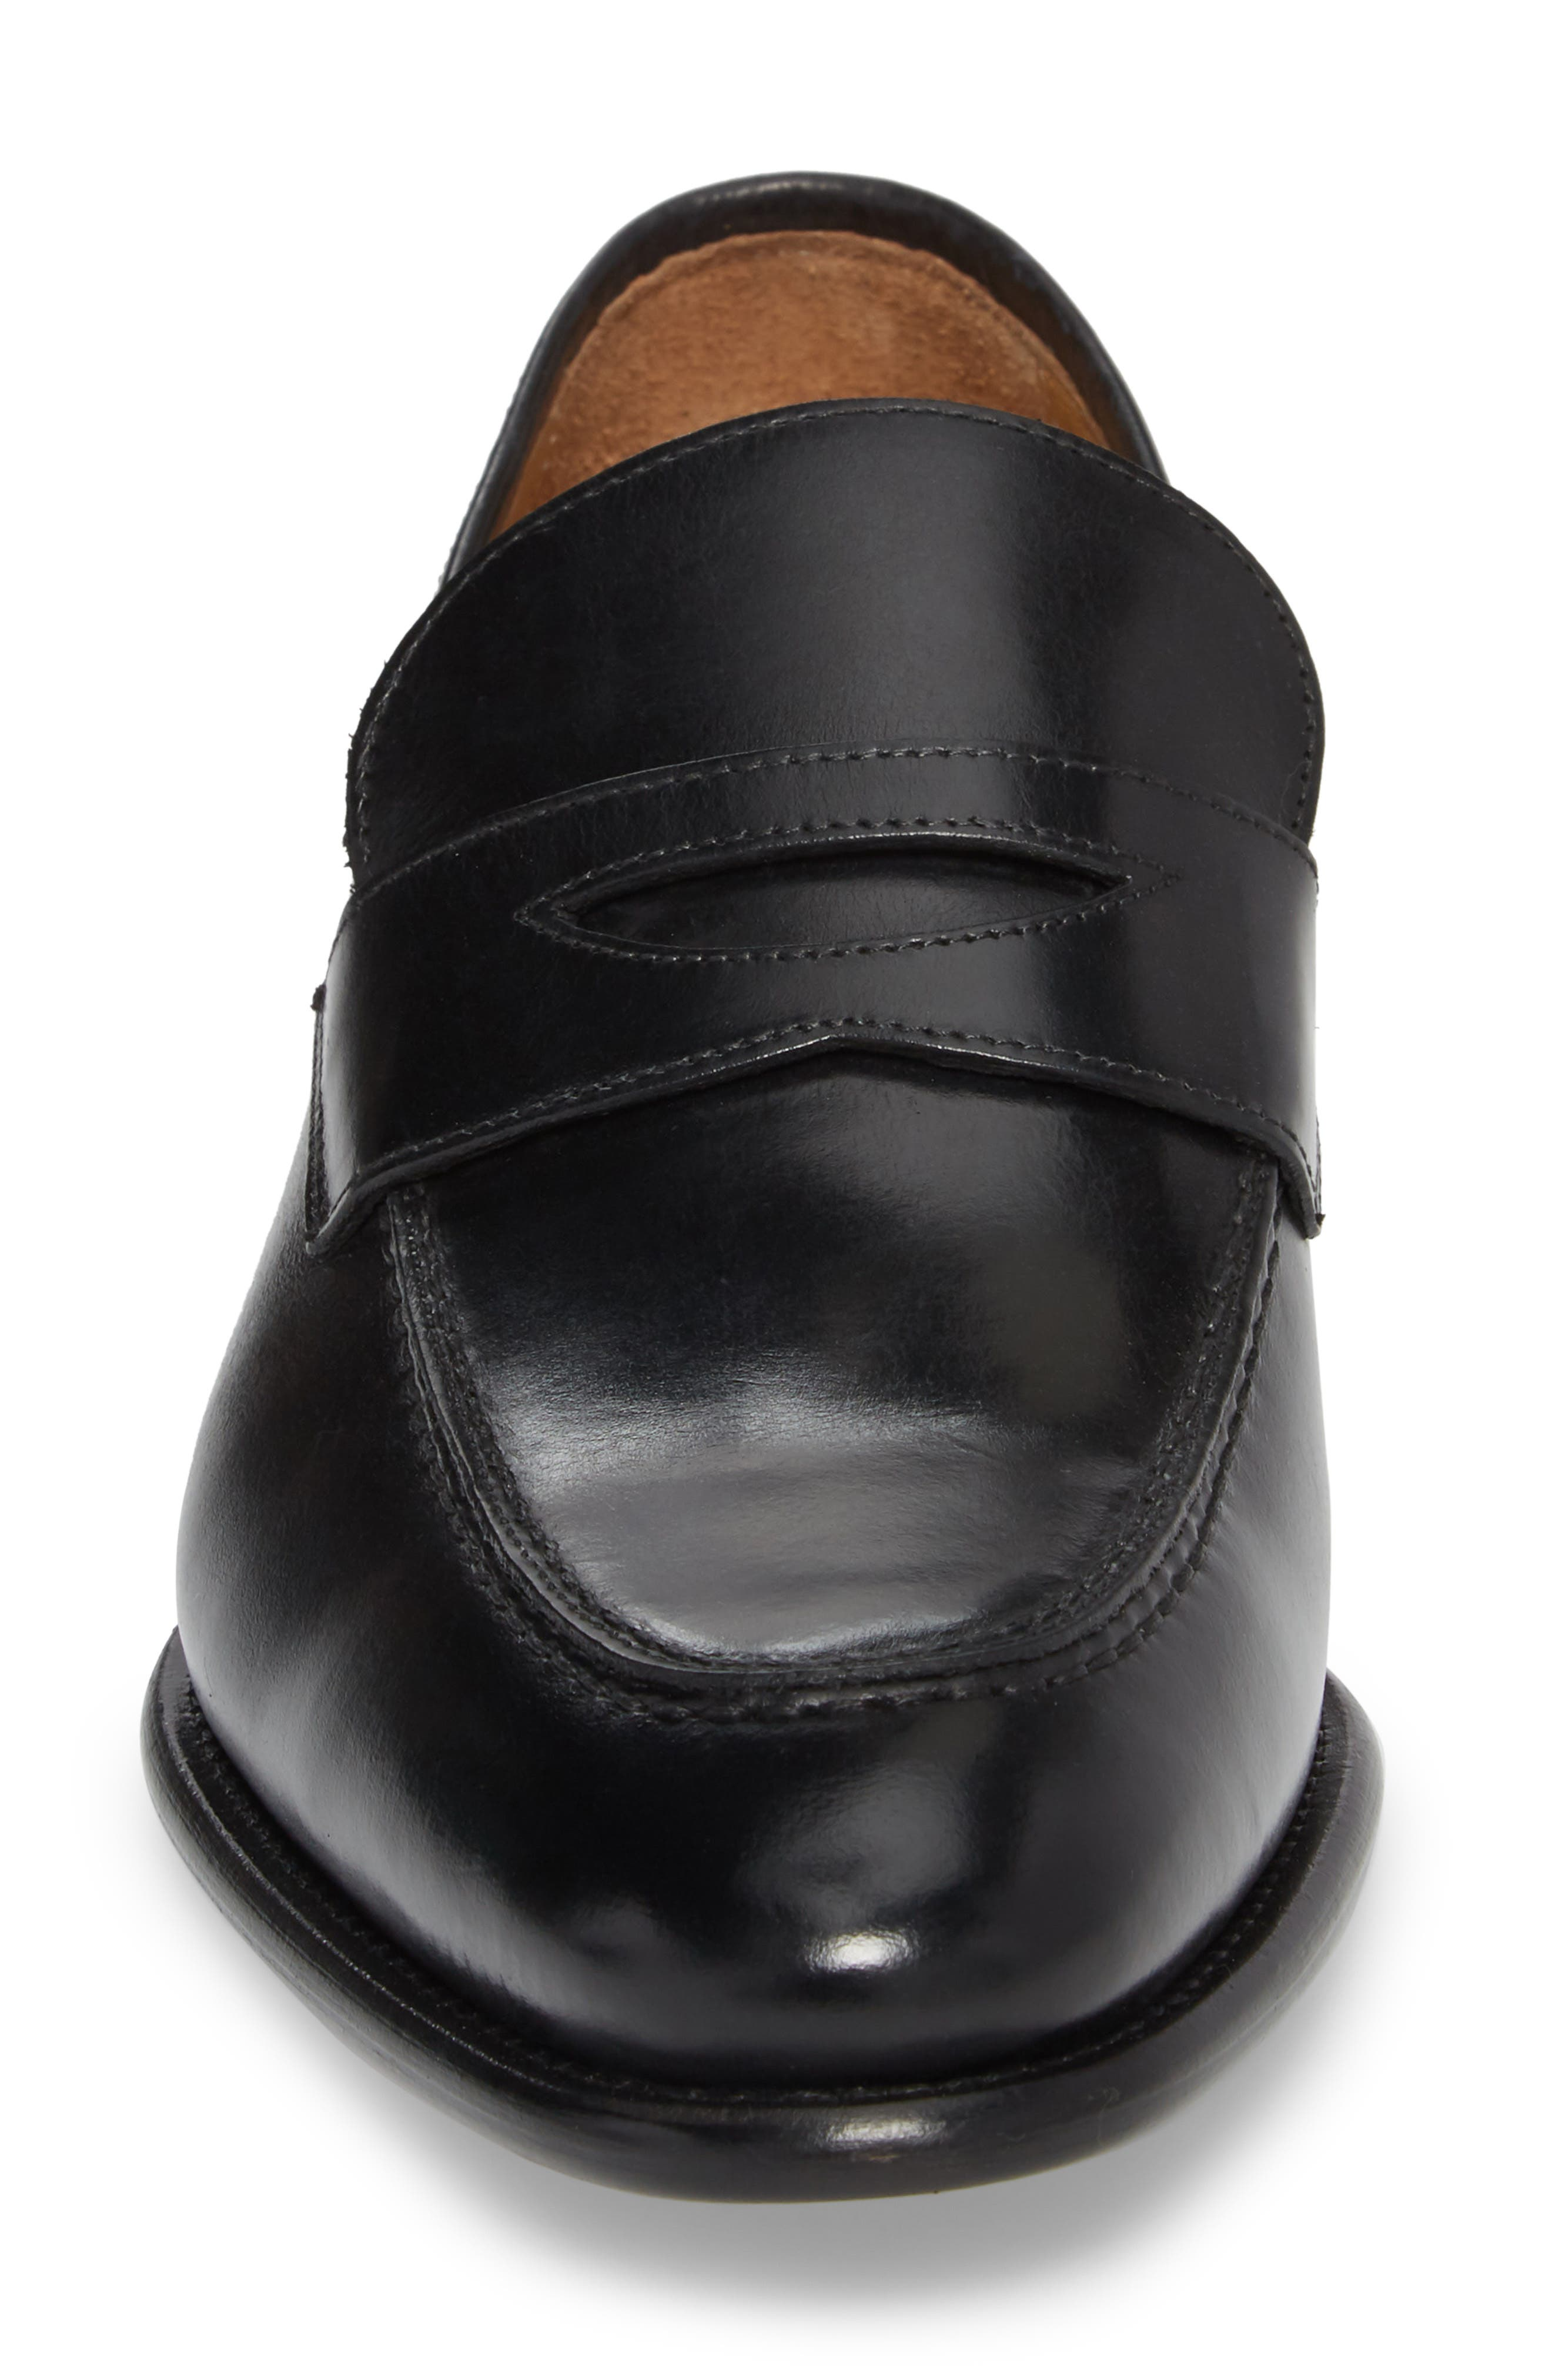 Imperial Venucci Apron Toe Penny Loafer,                             Alternate thumbnail 4, color,                             BLACK LEATHER